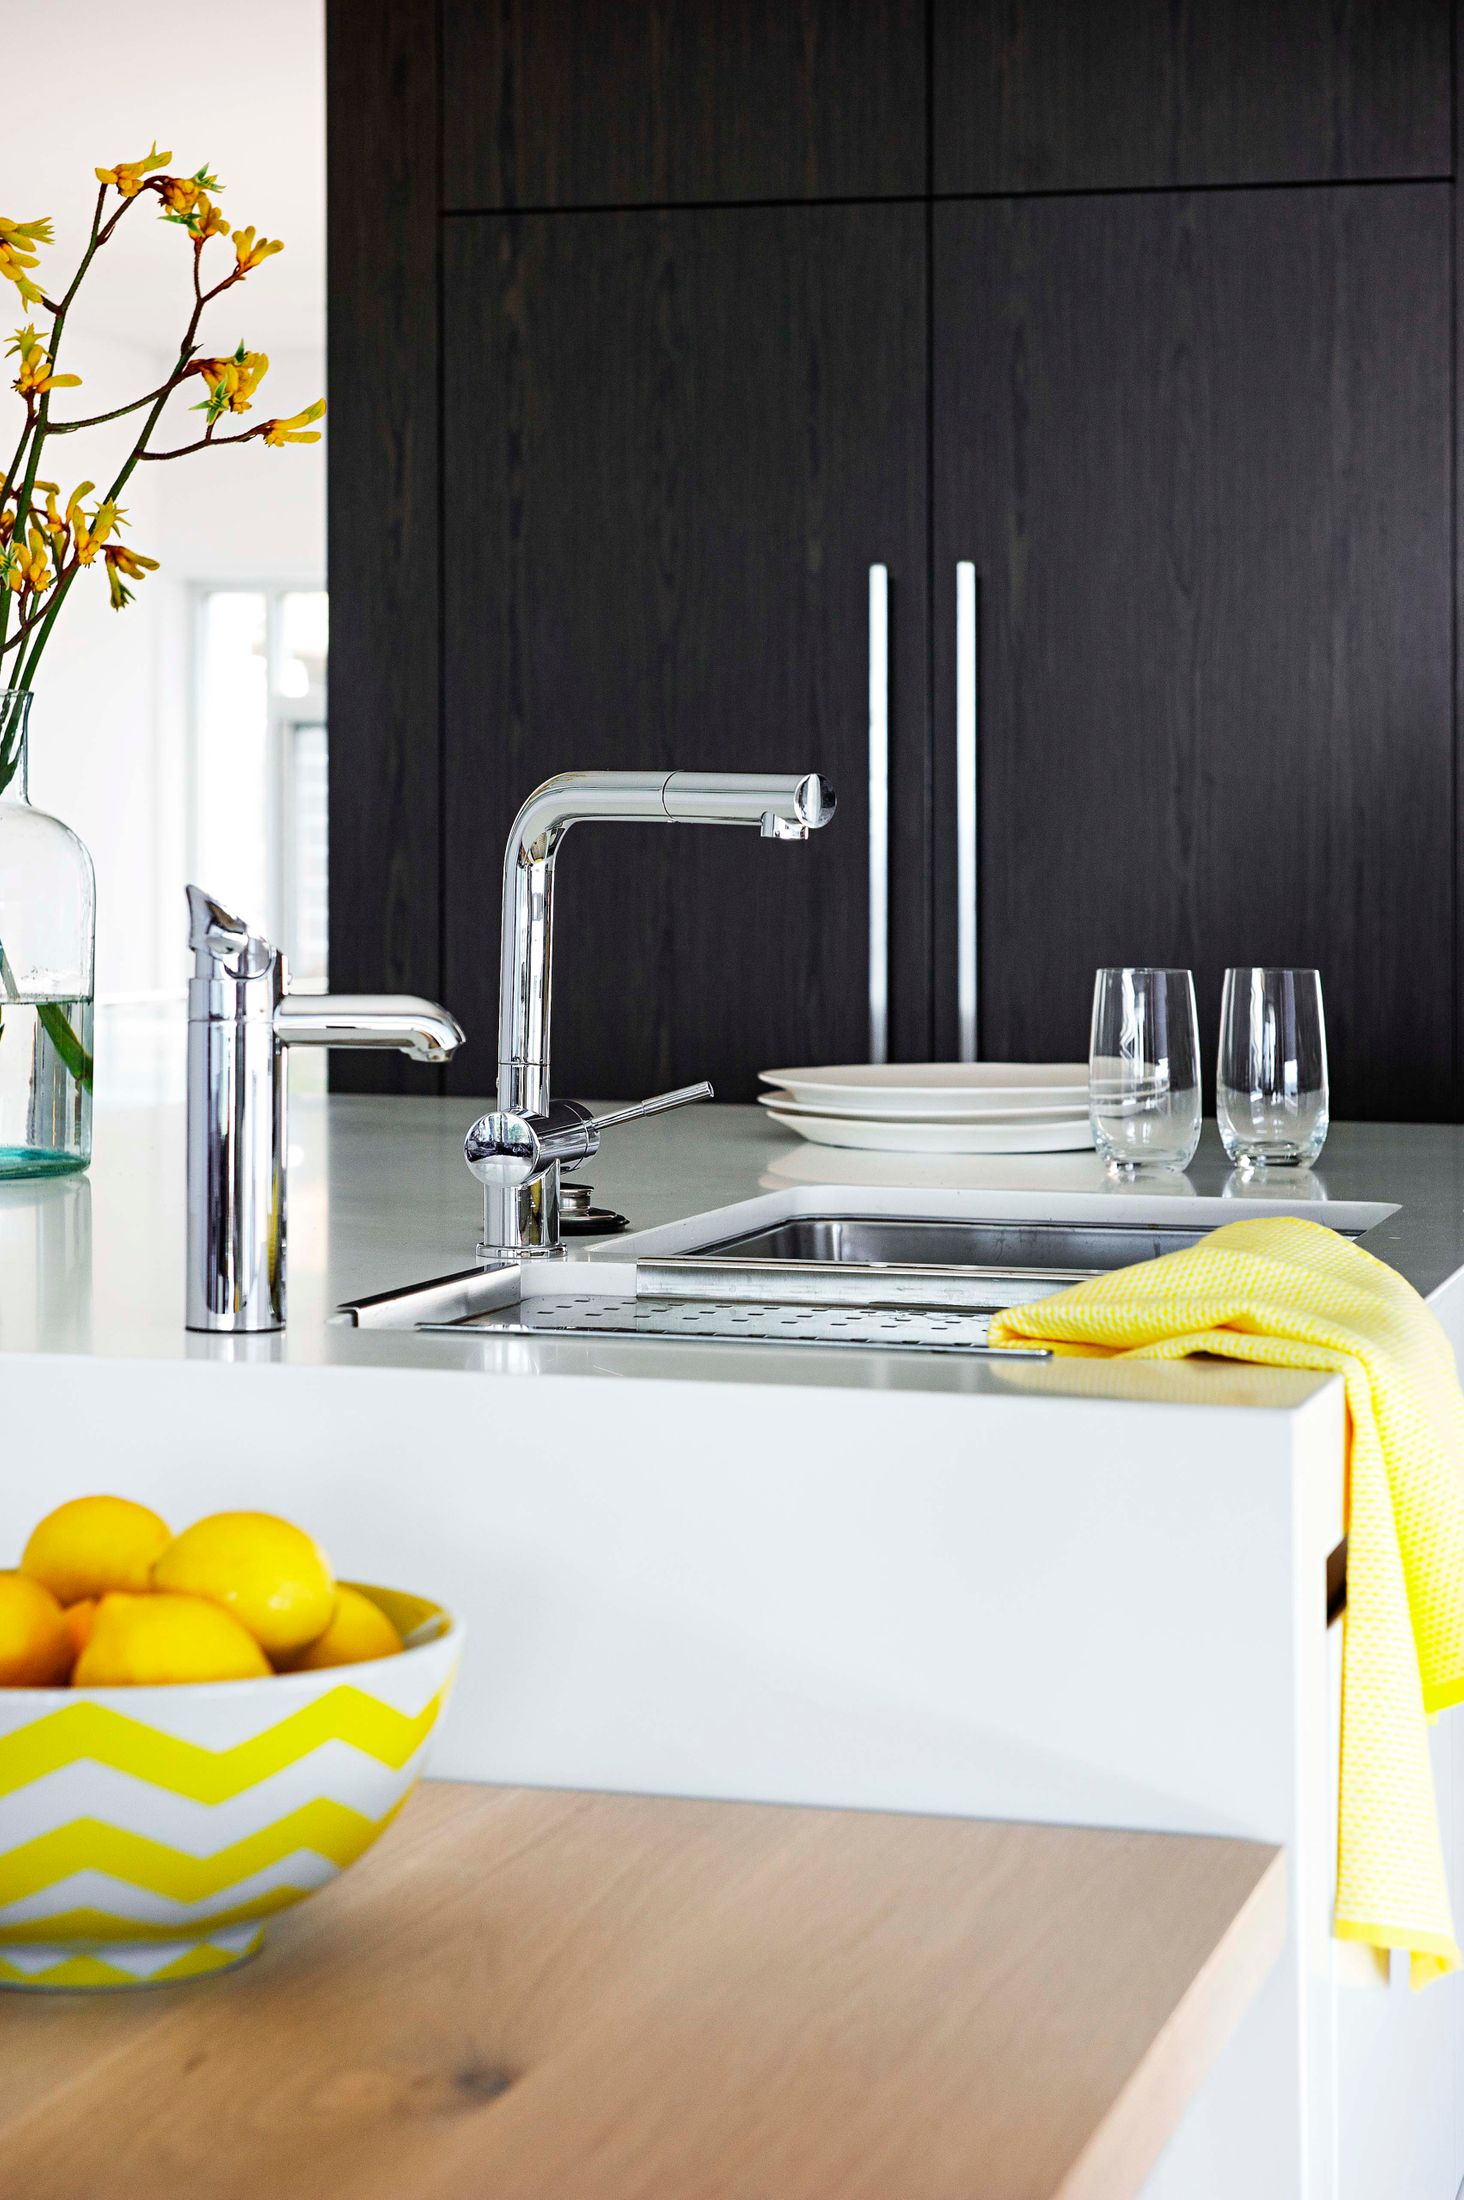 5 kitchen tools you ll never want to live without home - Free kitchen design software australia ...